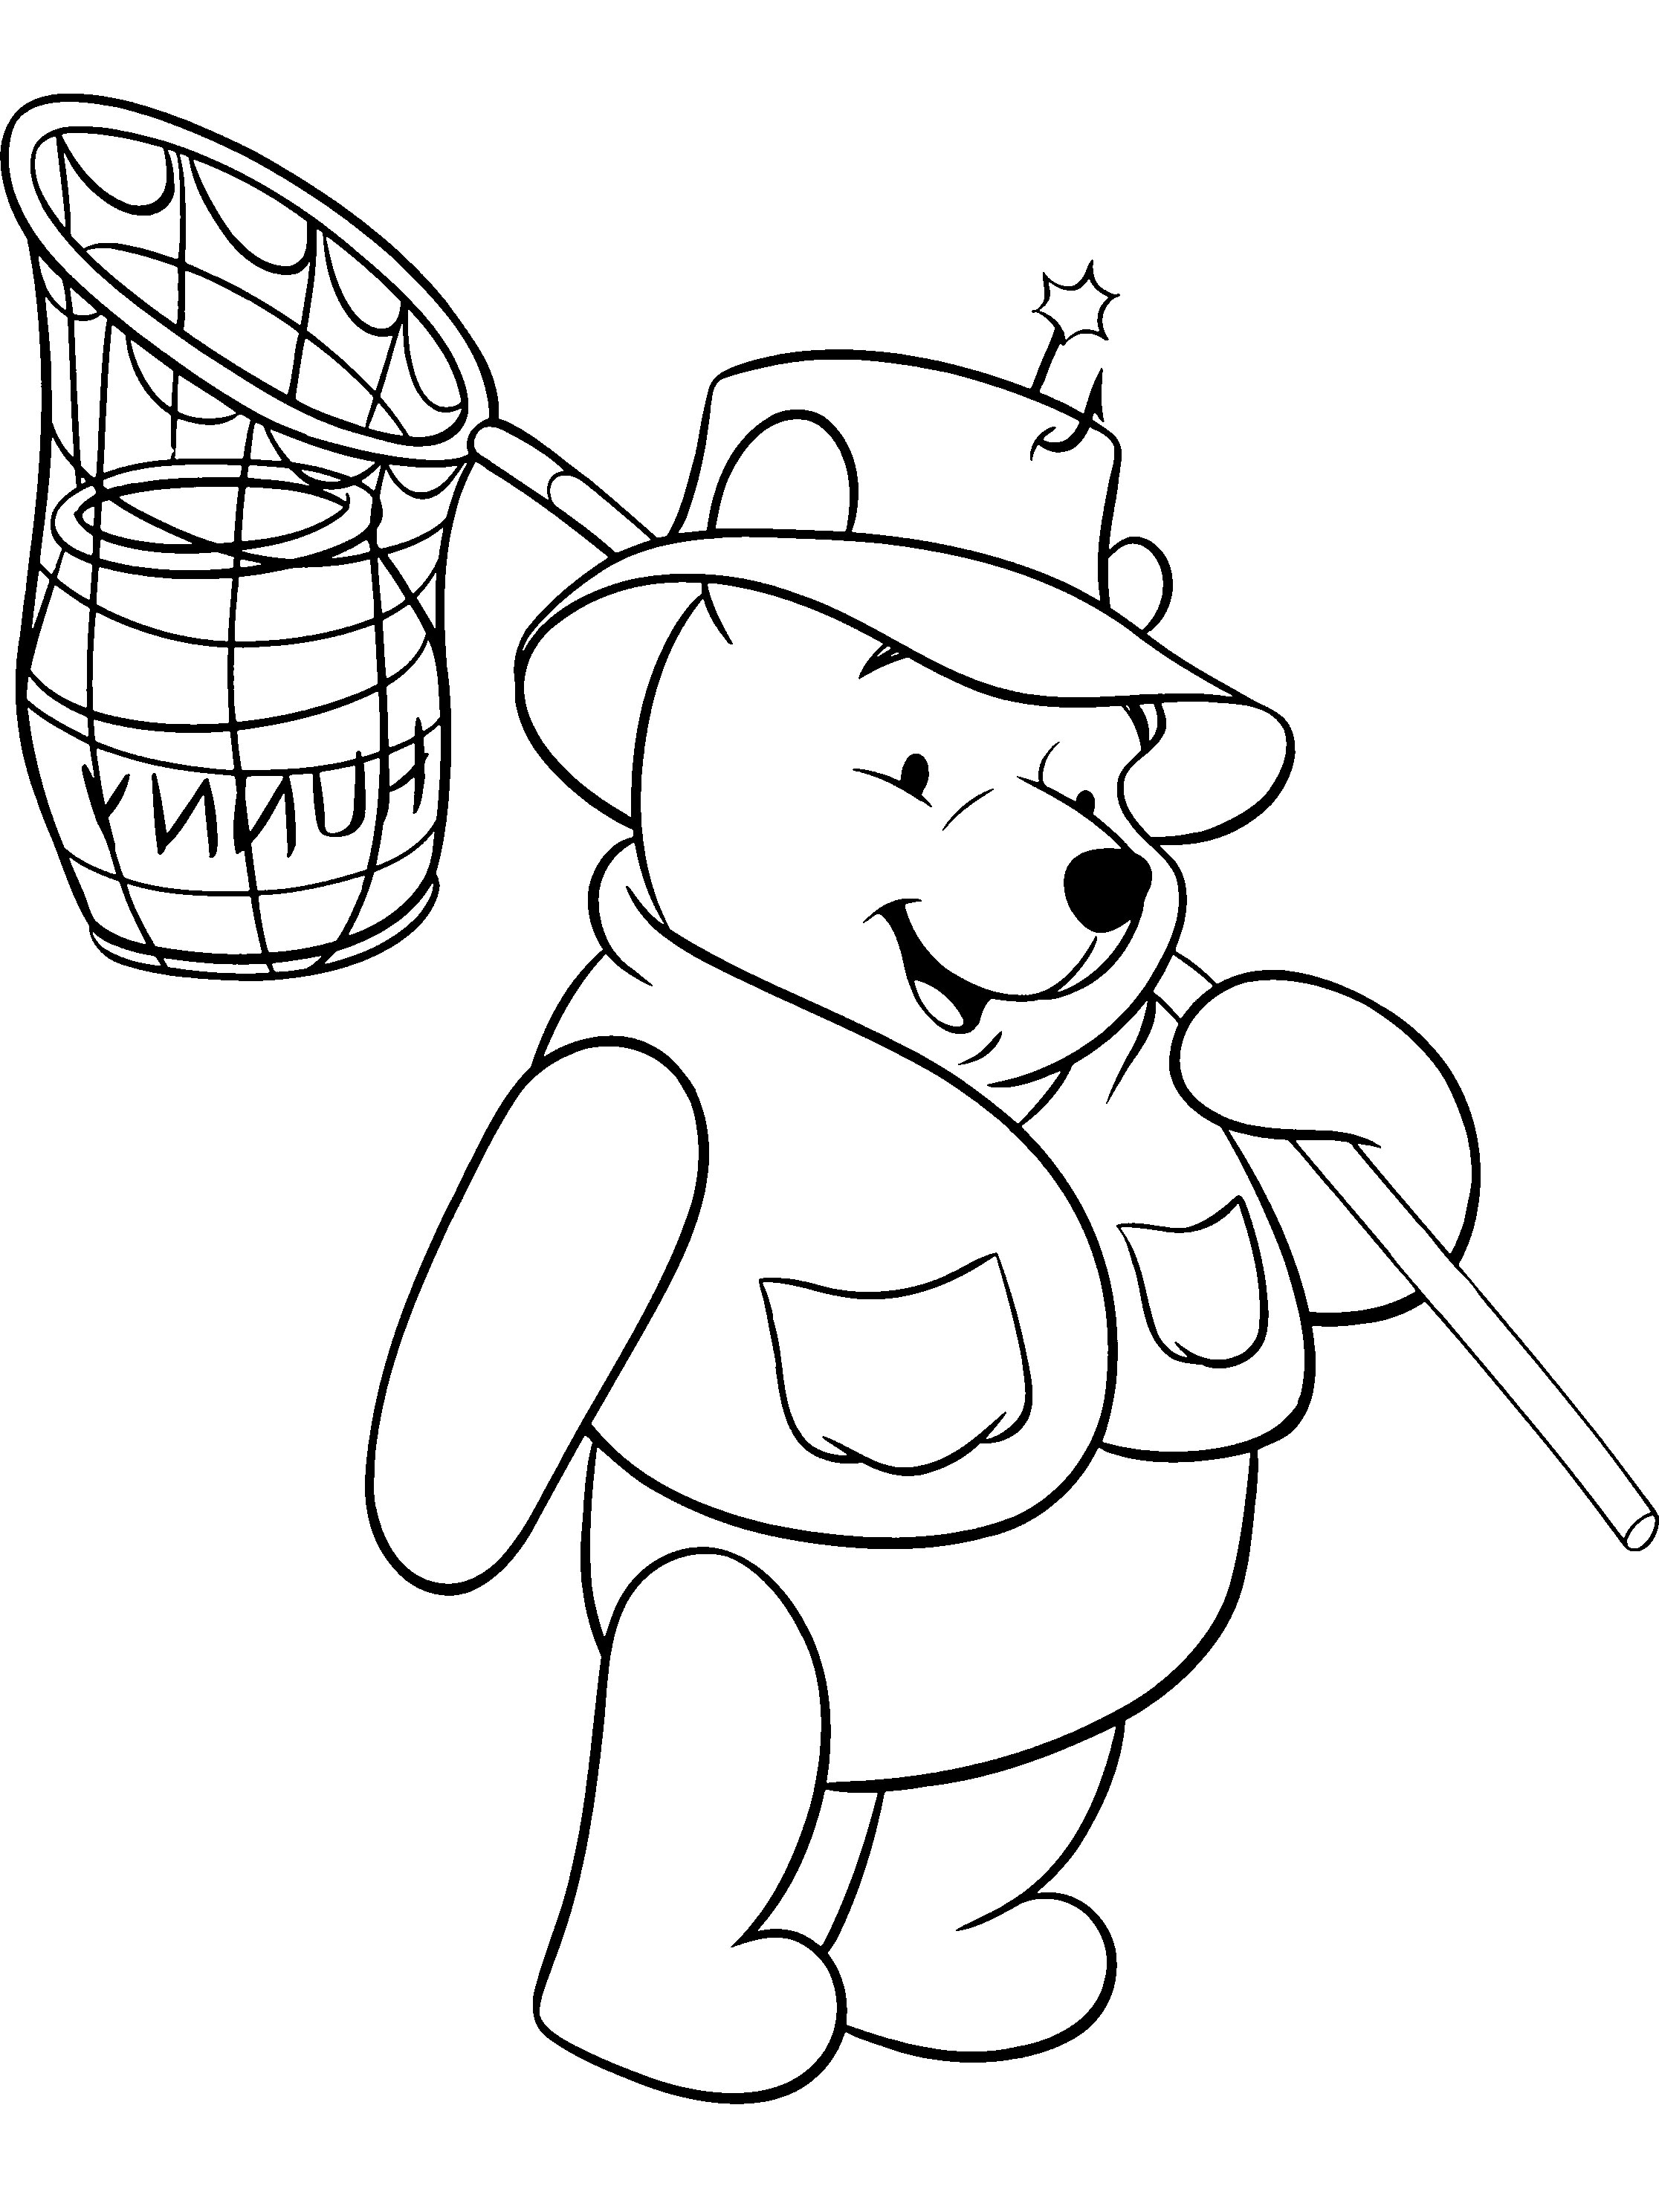 Winnie the Pooh Coloring Pages | 360ColoringPages